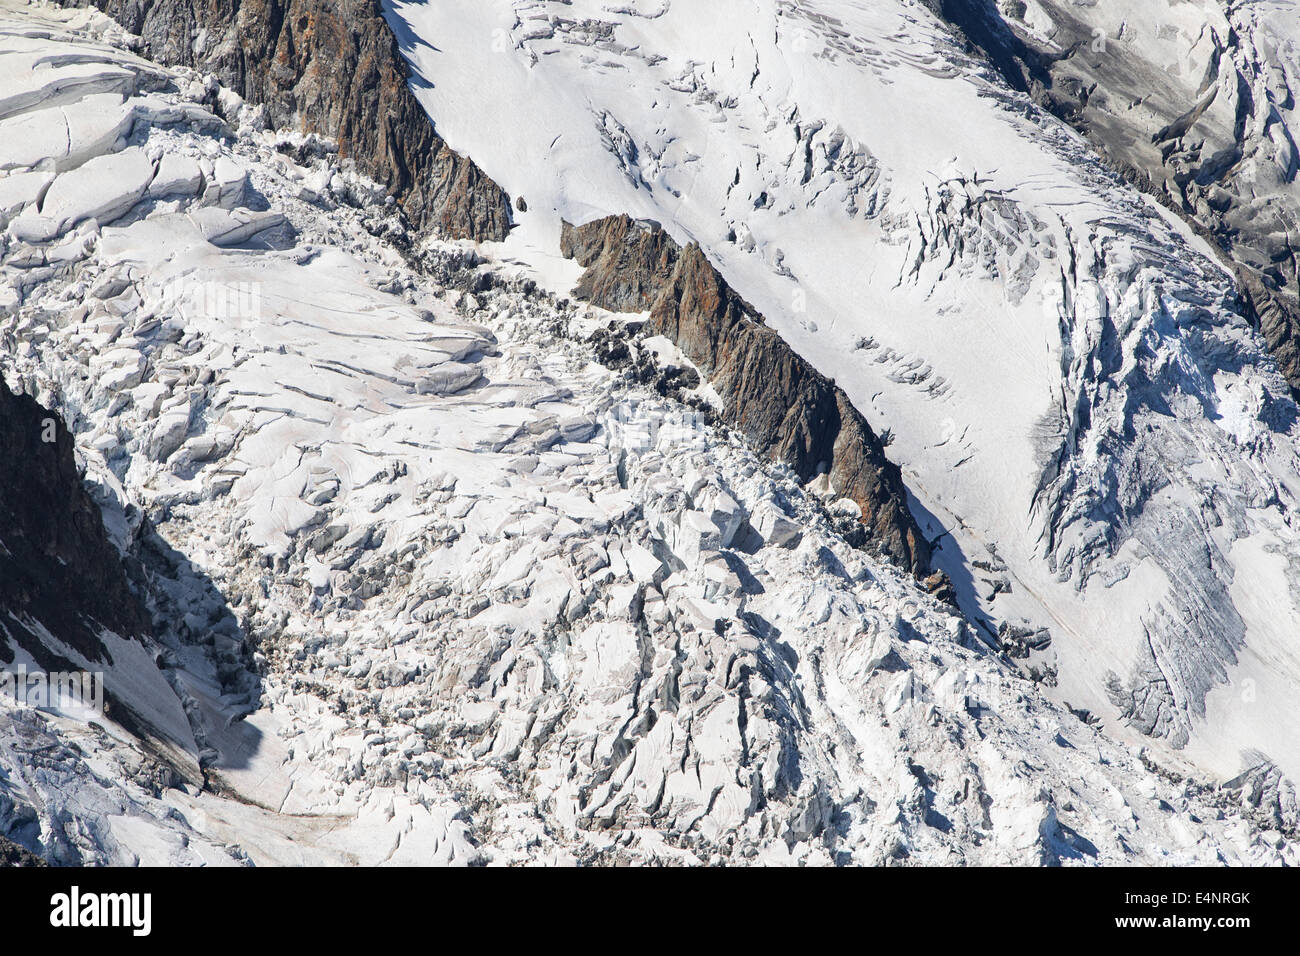 Seracs of the Bossons Icefall in the Mont Blanc massif, France. - Stock Image